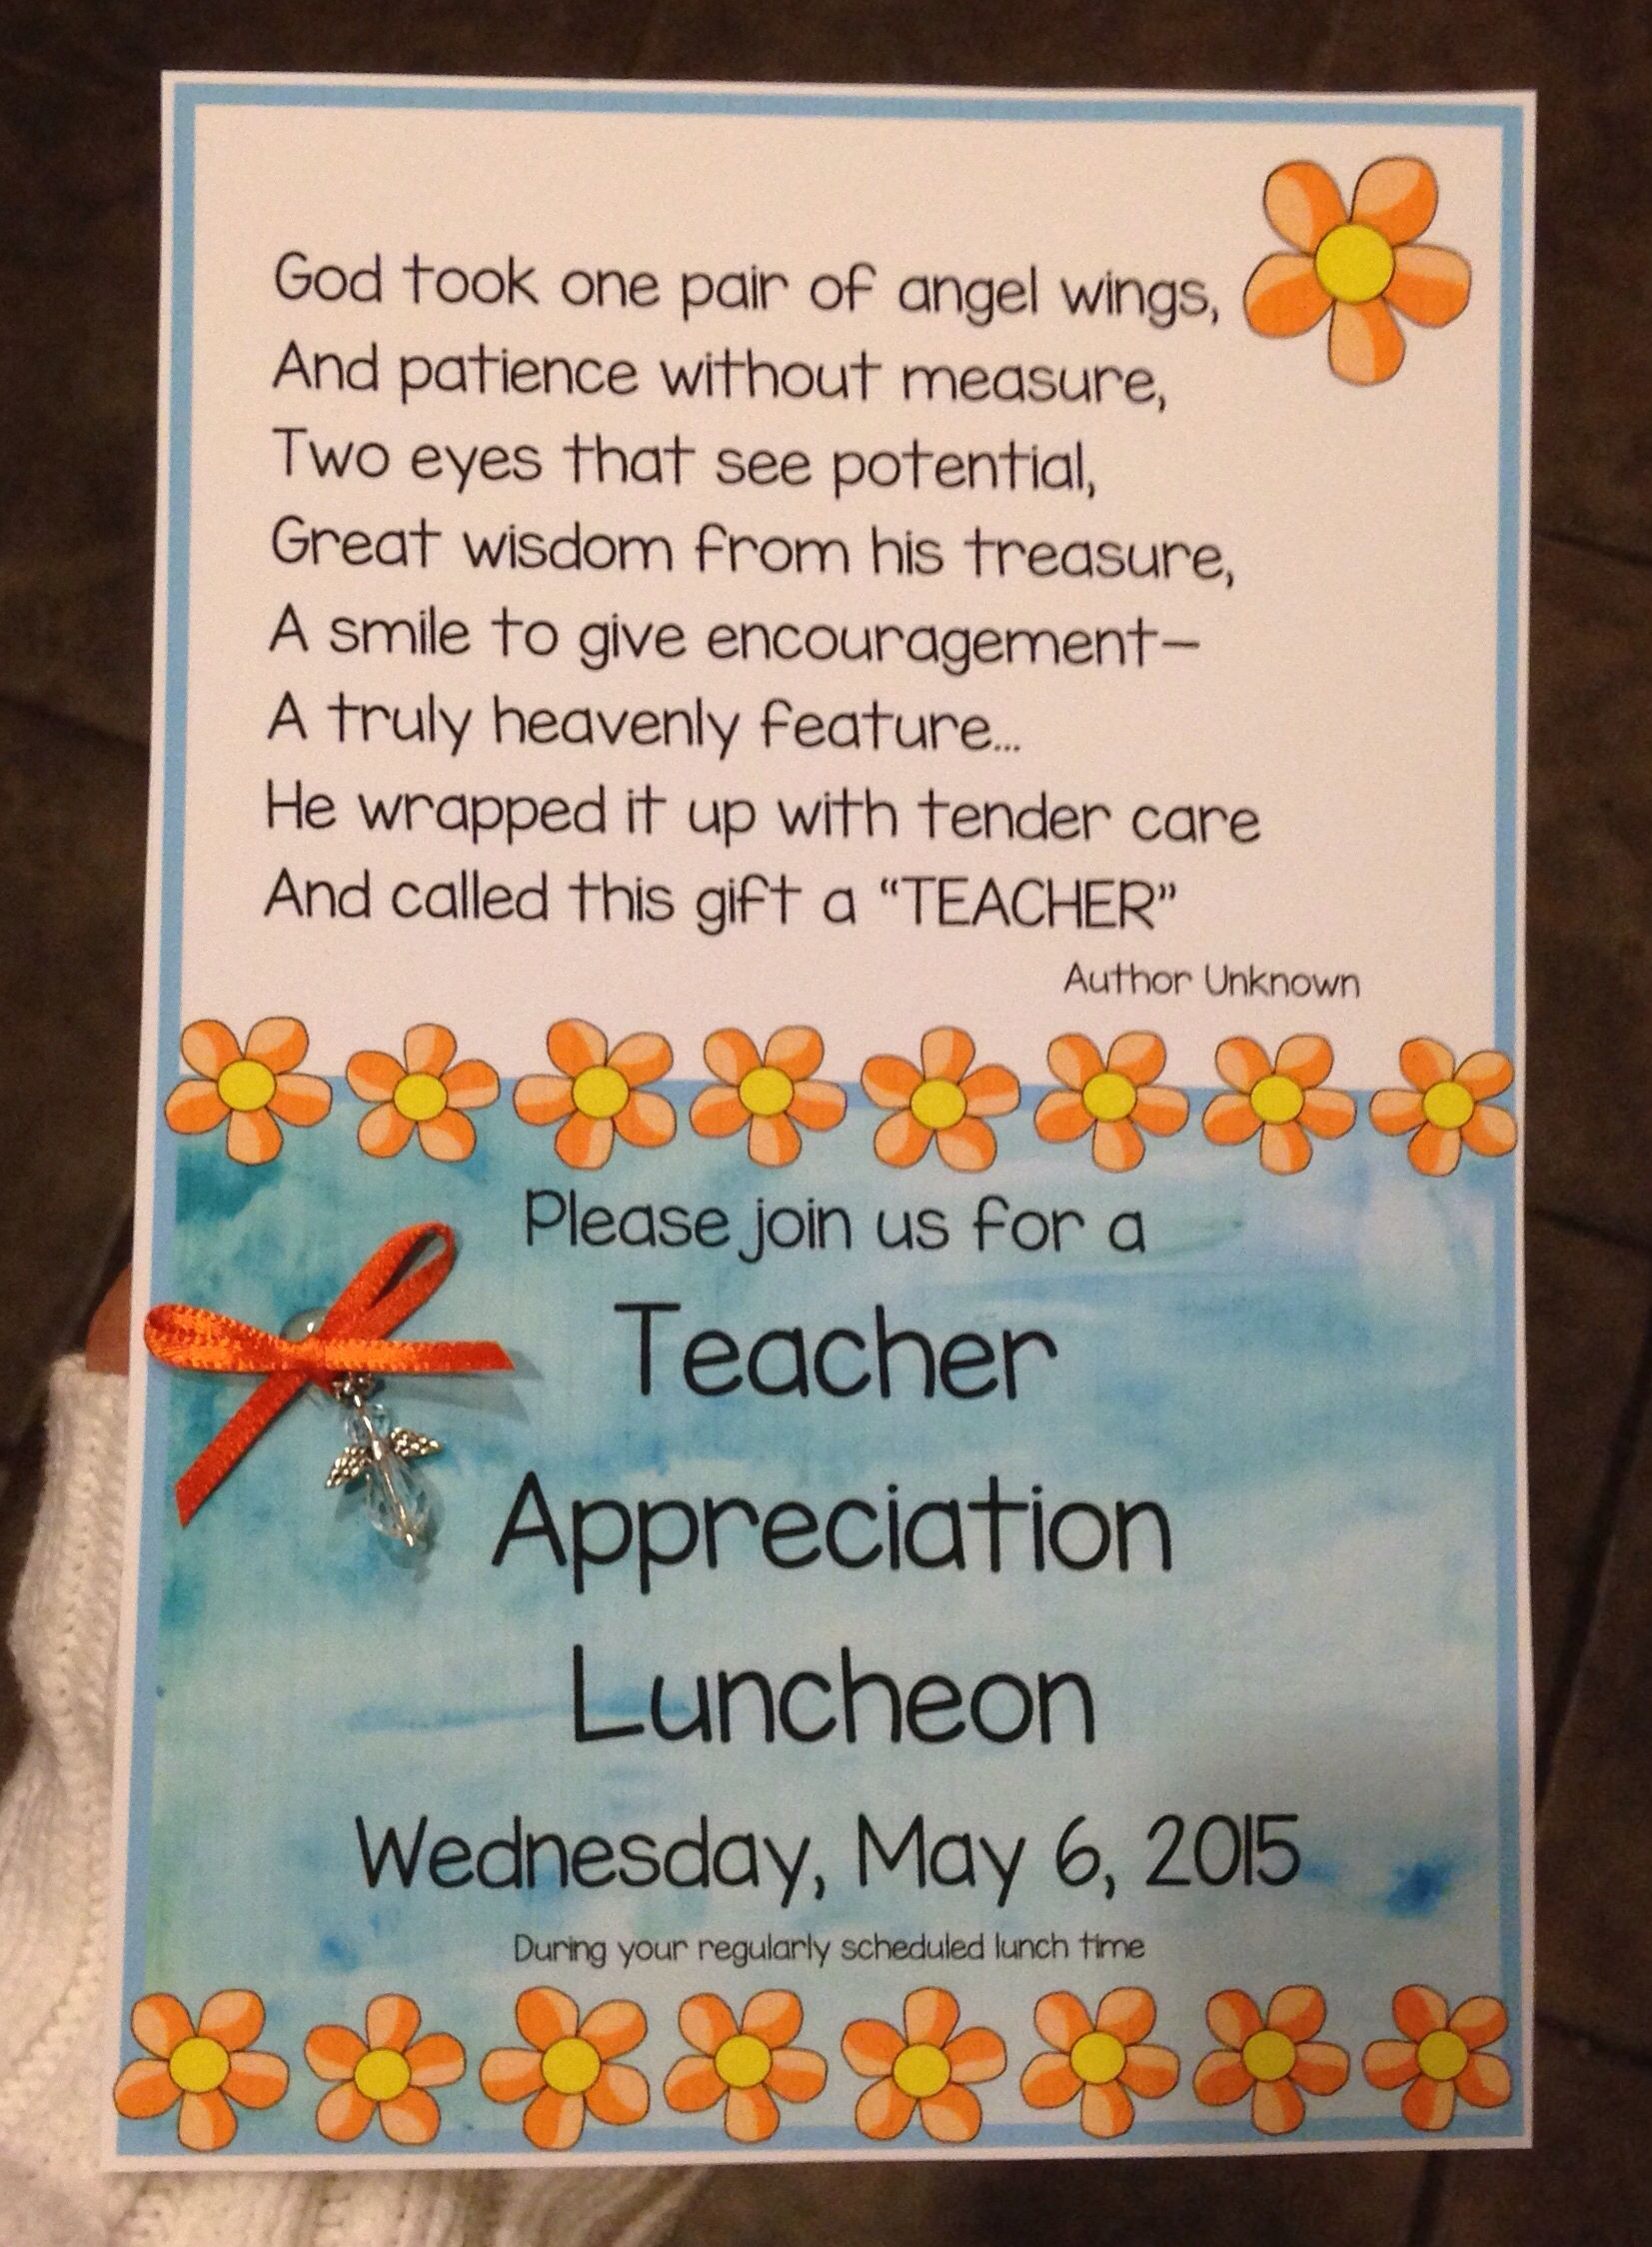 Teacher appreciation luncheon invitation pinteres teacher appreciation luncheon invitation more stopboris